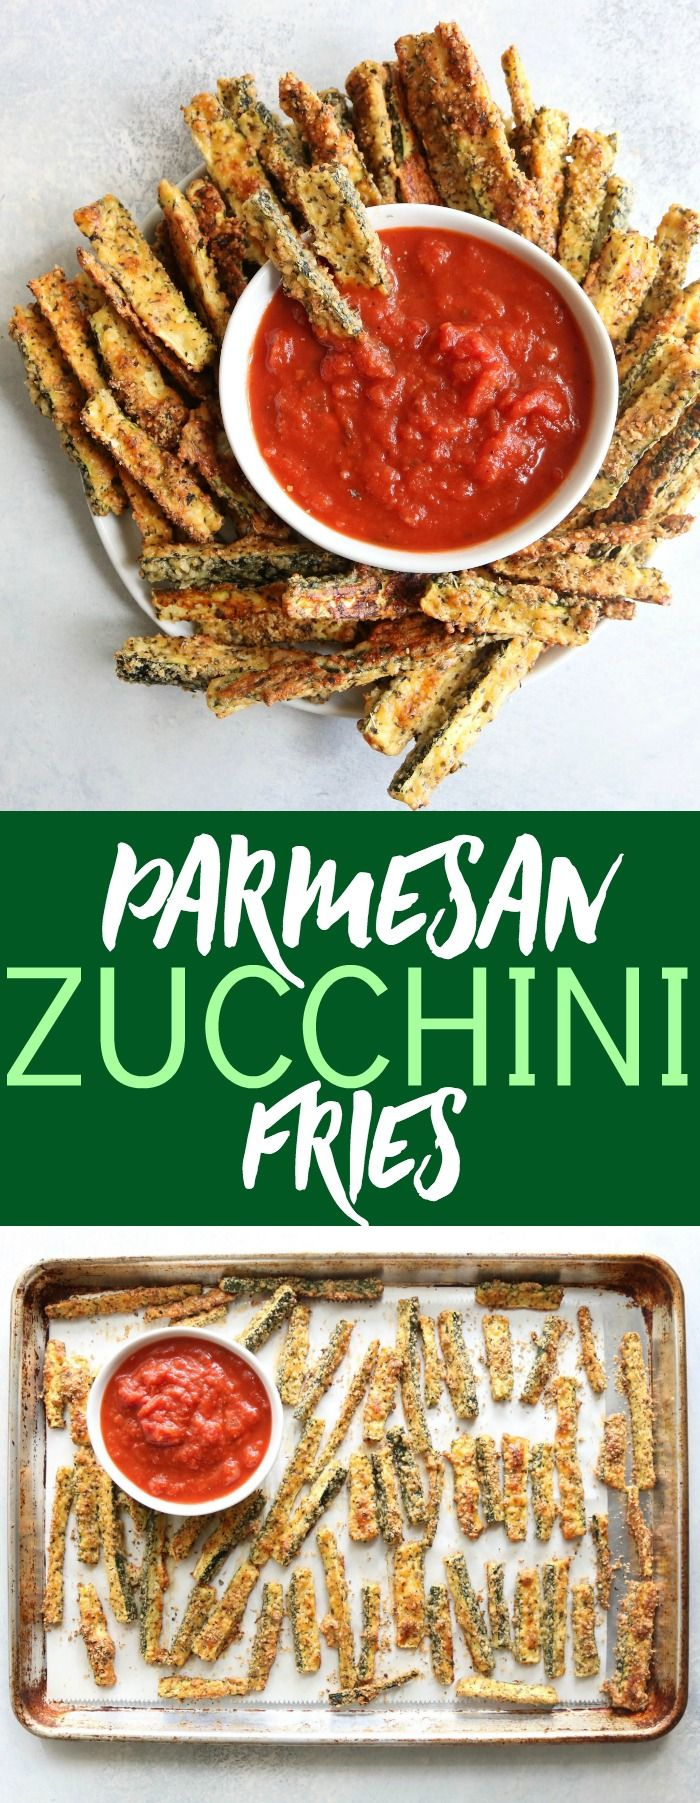 Parmesan Crusted Zucchini Fries - The Toasted Pine Nut